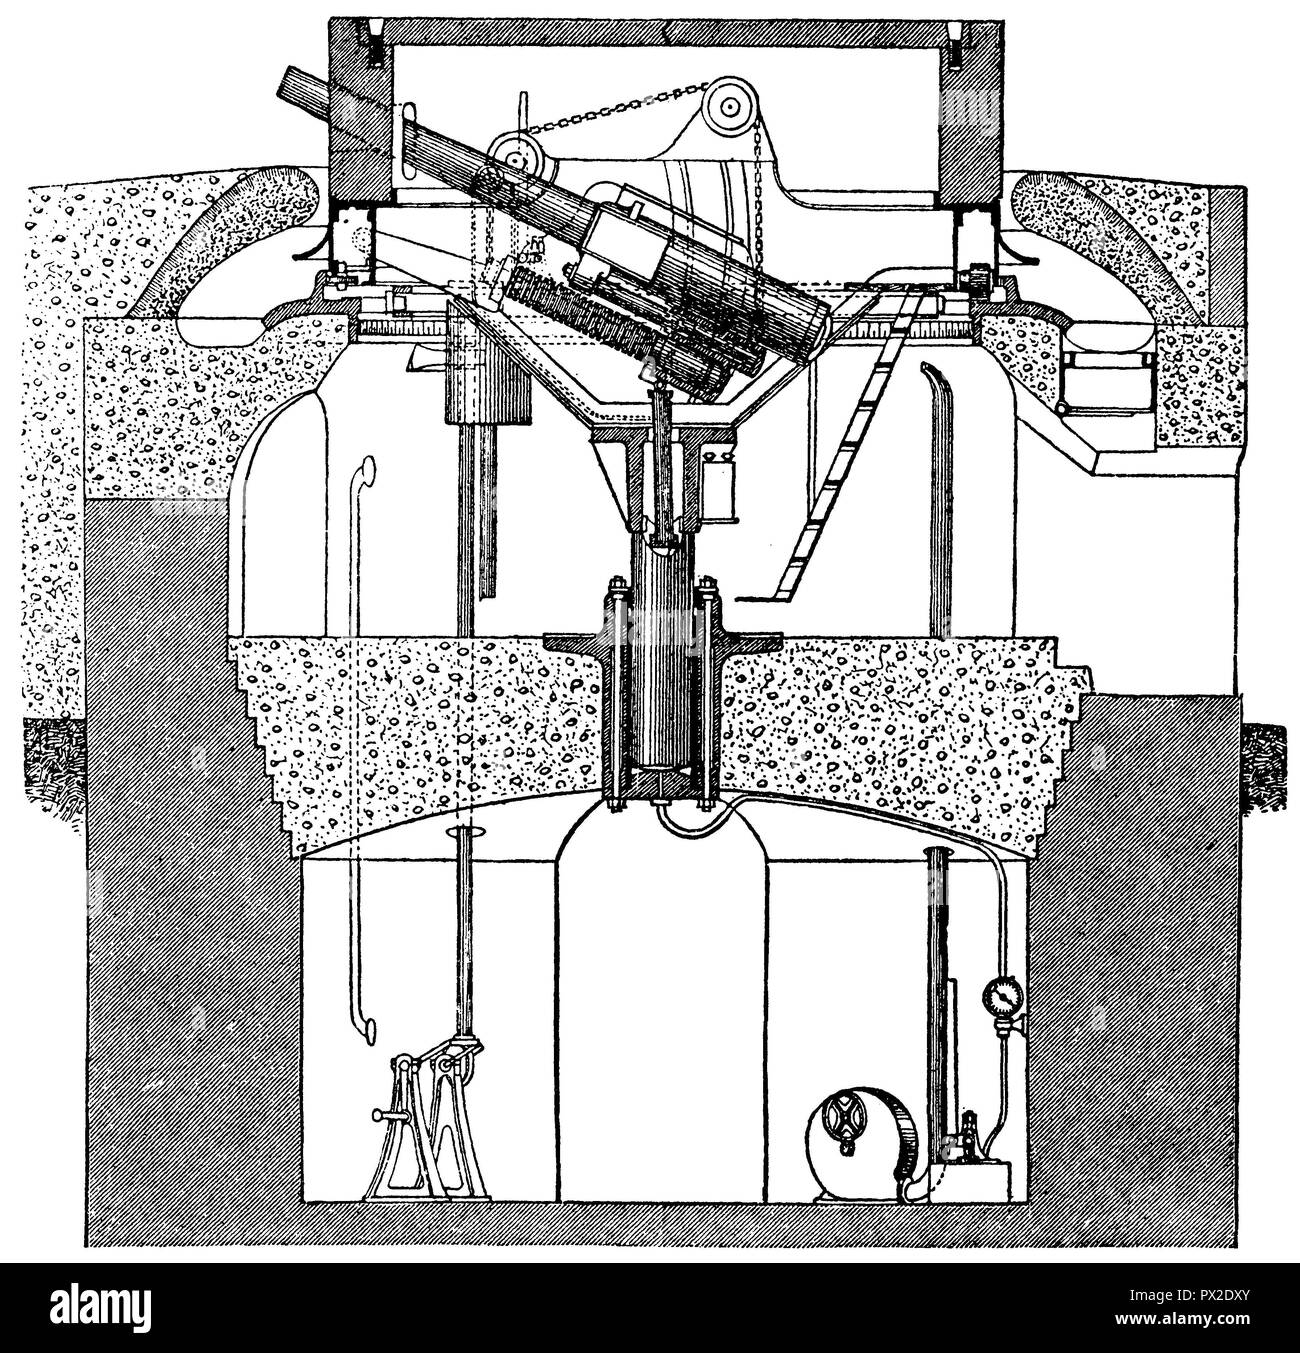 Tank Turret Black And White Stock Photos Images Alamy Merkava Schematic French Image